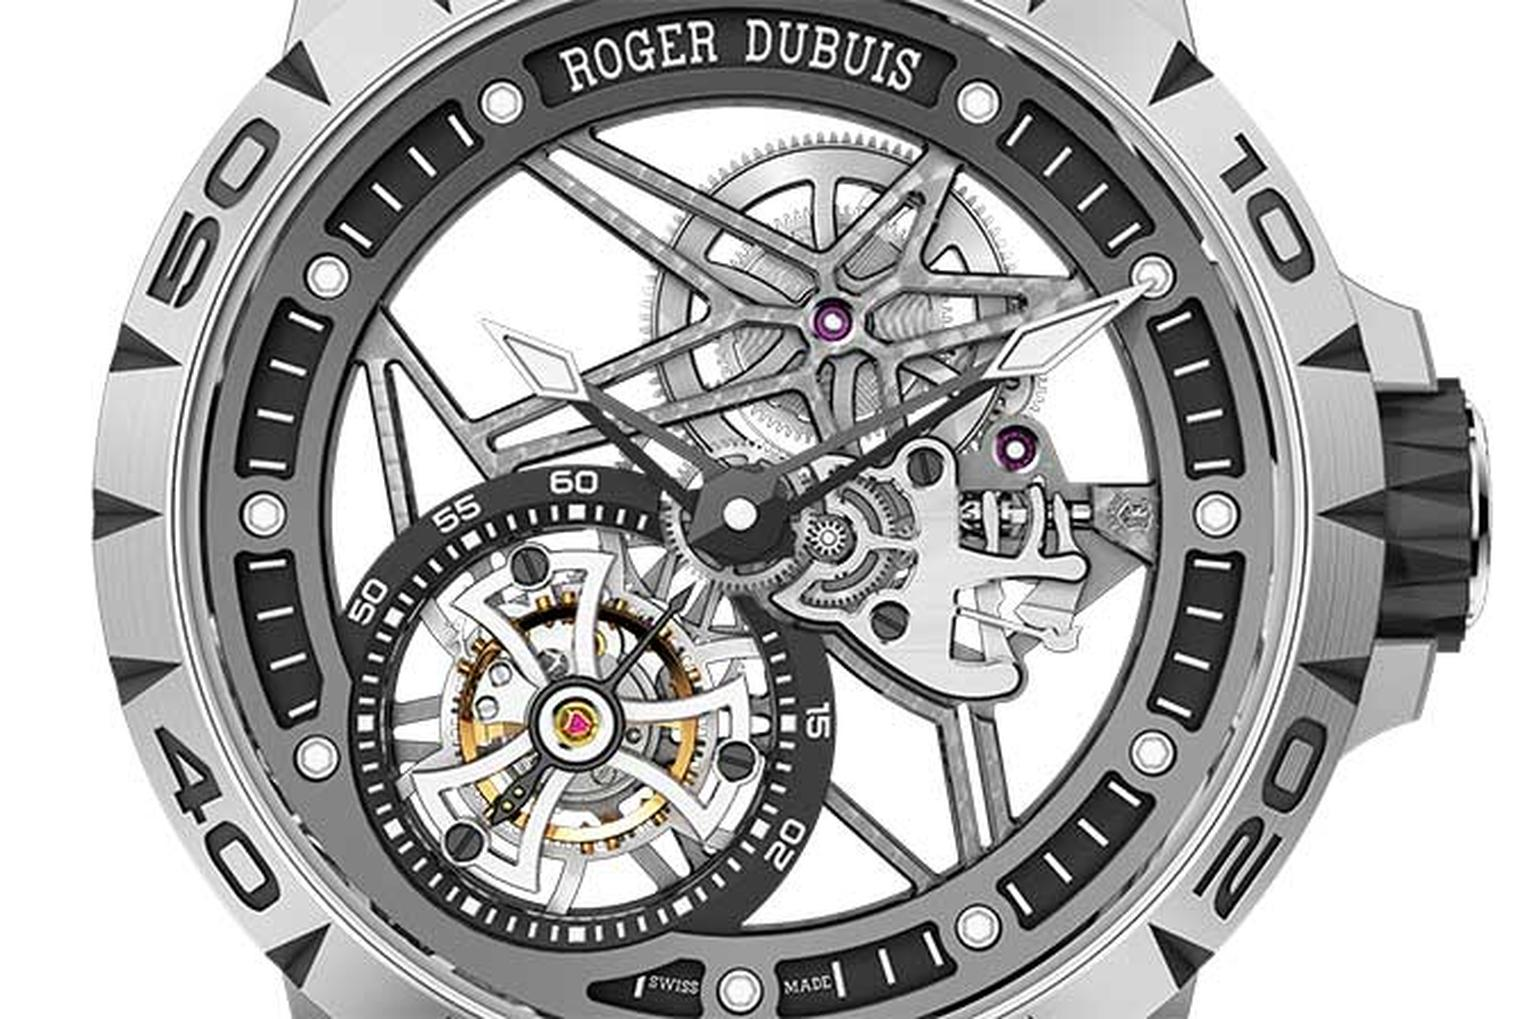 Roger Dubuis Skeleton watch HP